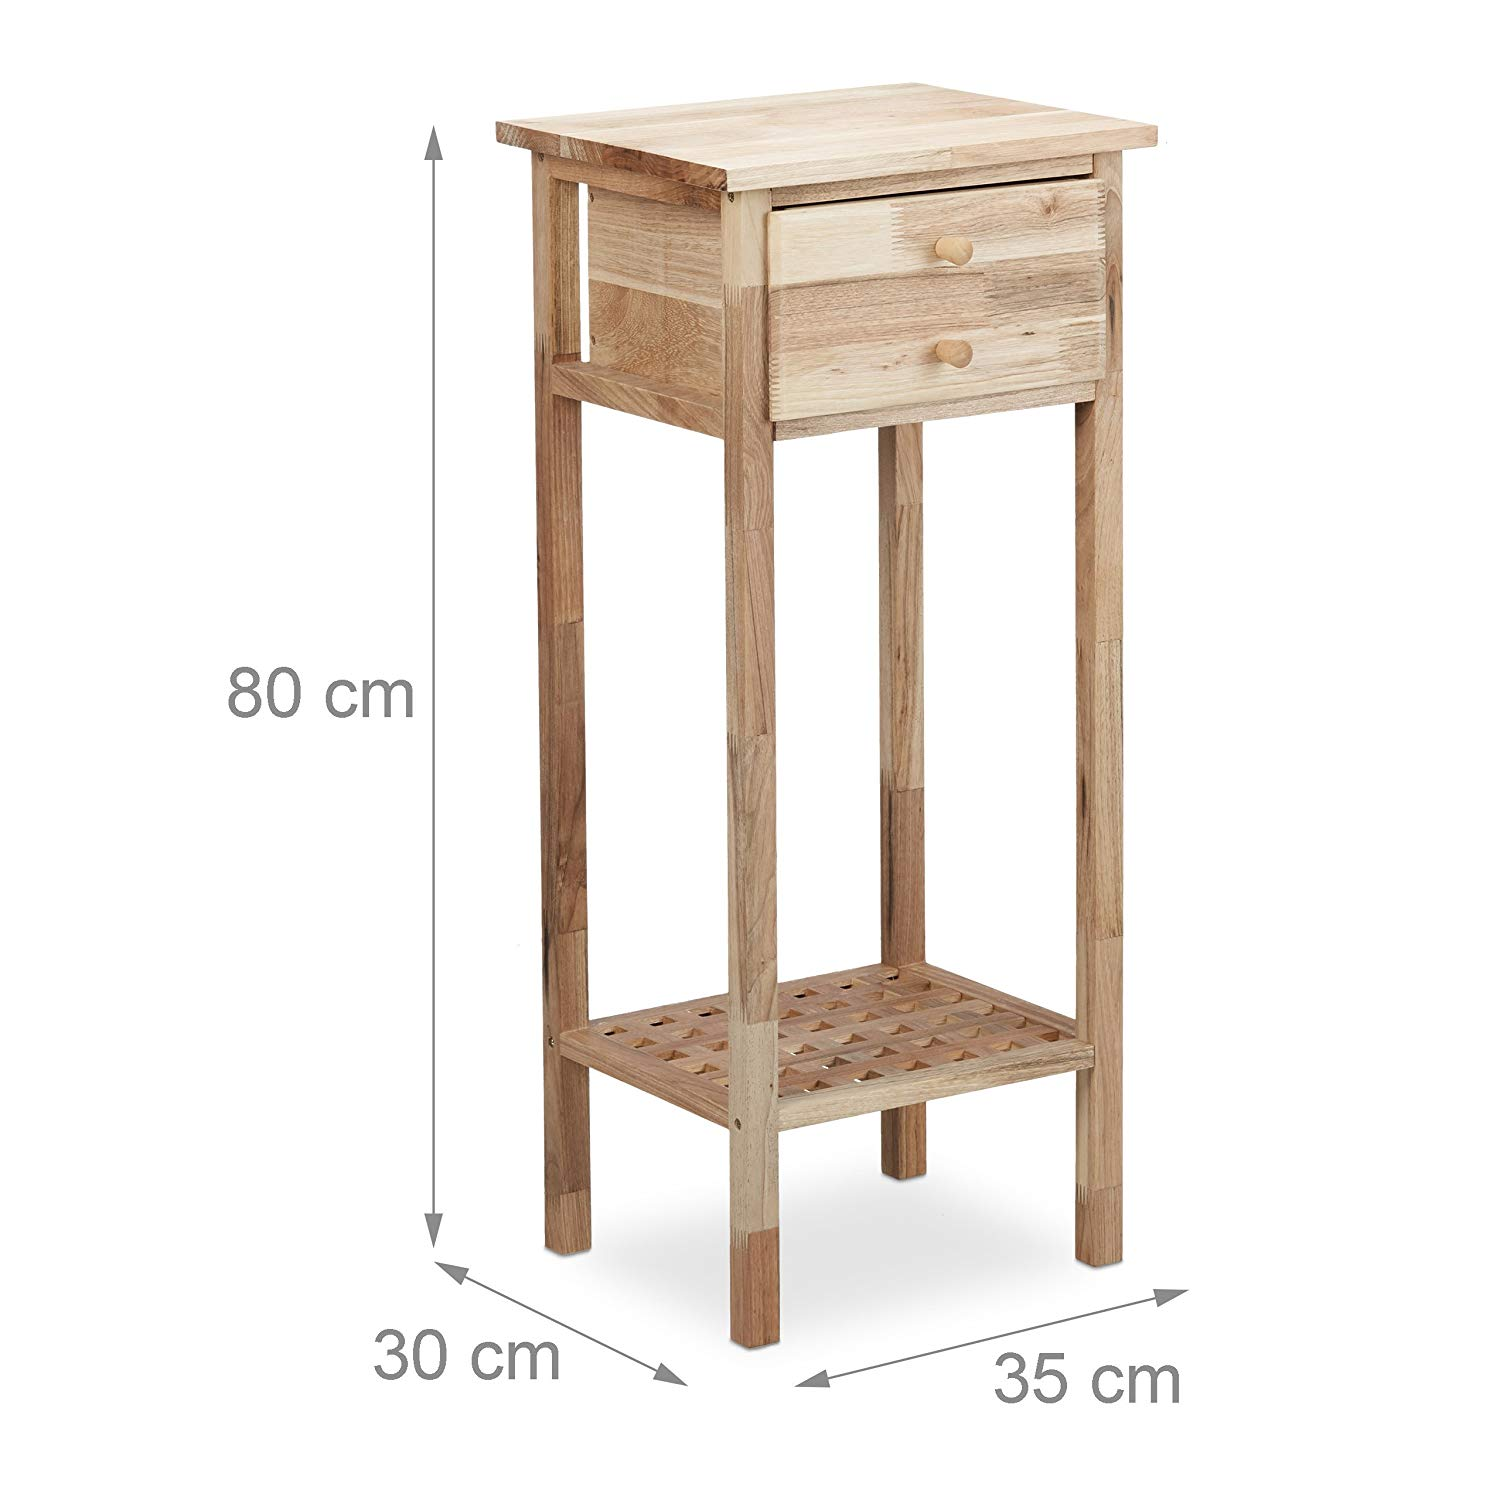 Relaxdays Walnut Side Table with Drawer, 2 Shelves